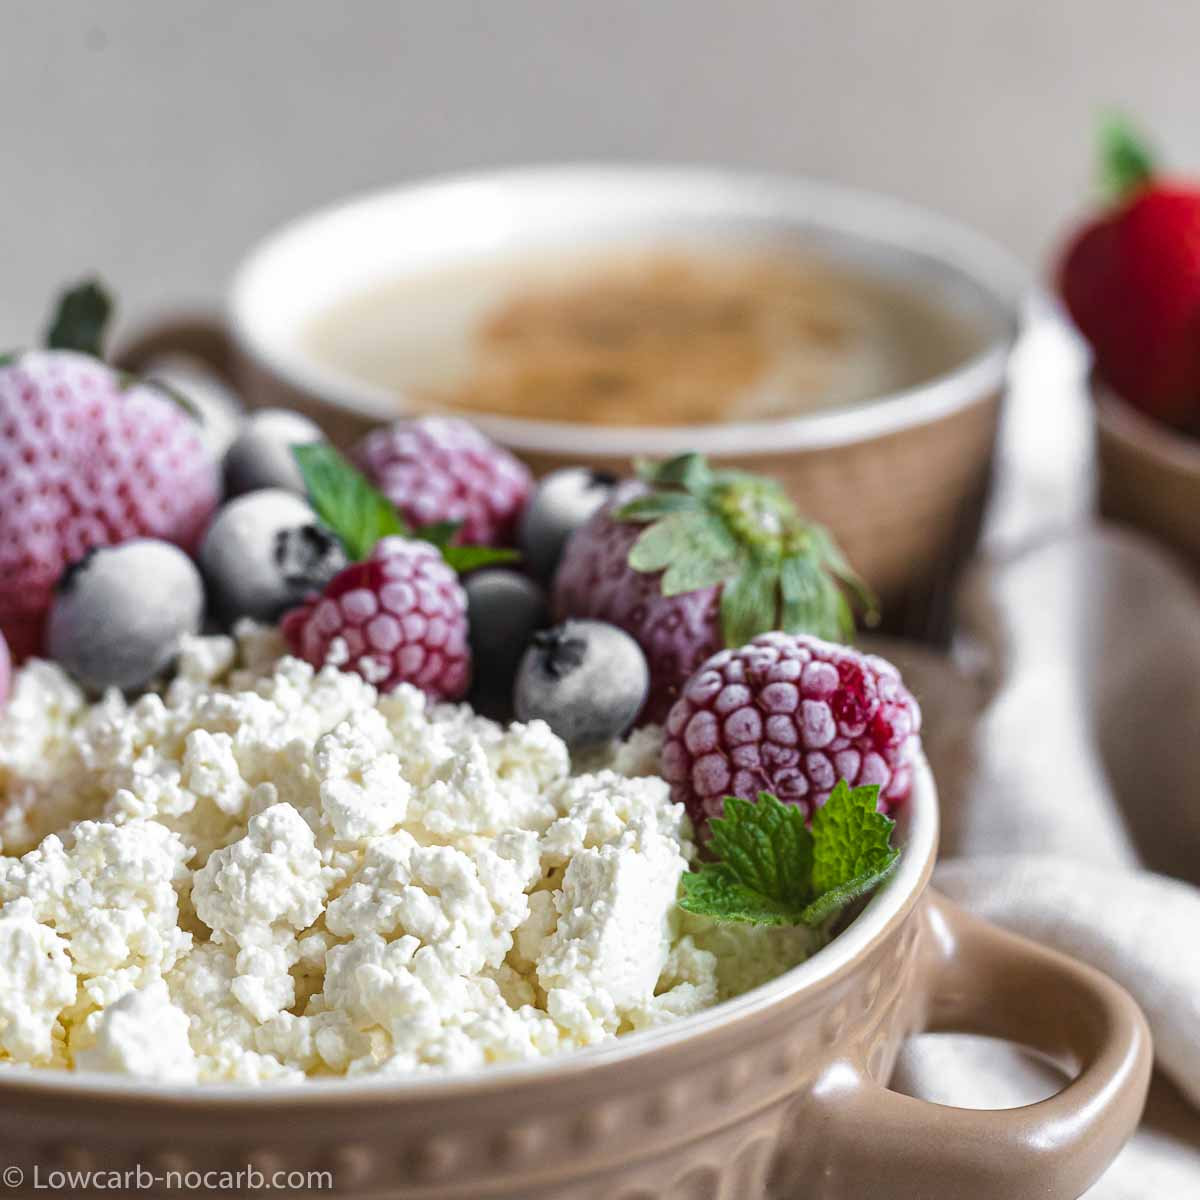 Curd Cheese made at home with berries on top for breakfast